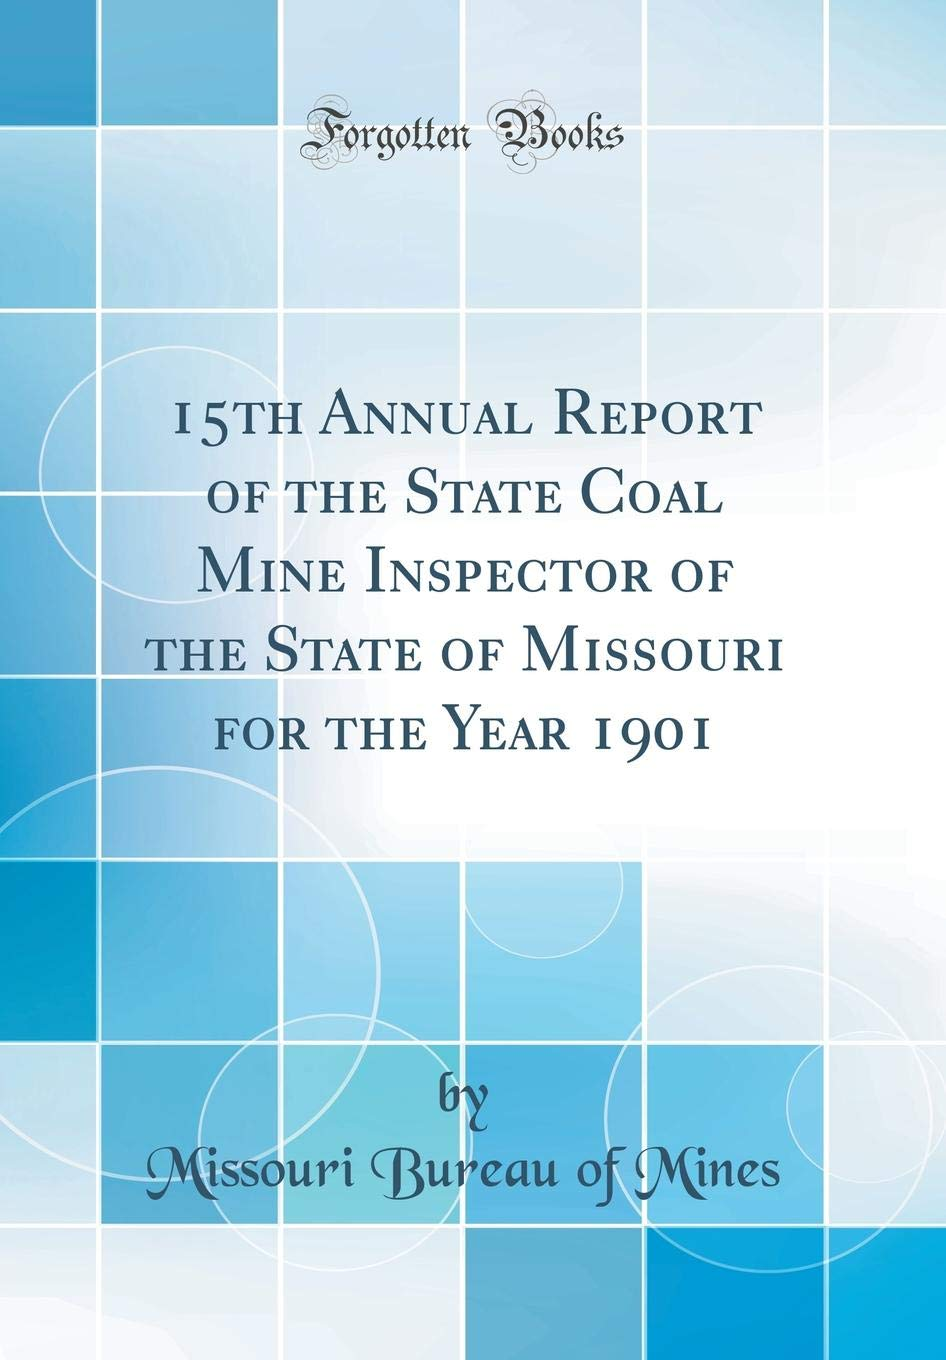 15th Annual Report of the State Coal Mine Inspector of the State of Missouri for the Year 1901 (Classic Reprint) pdf